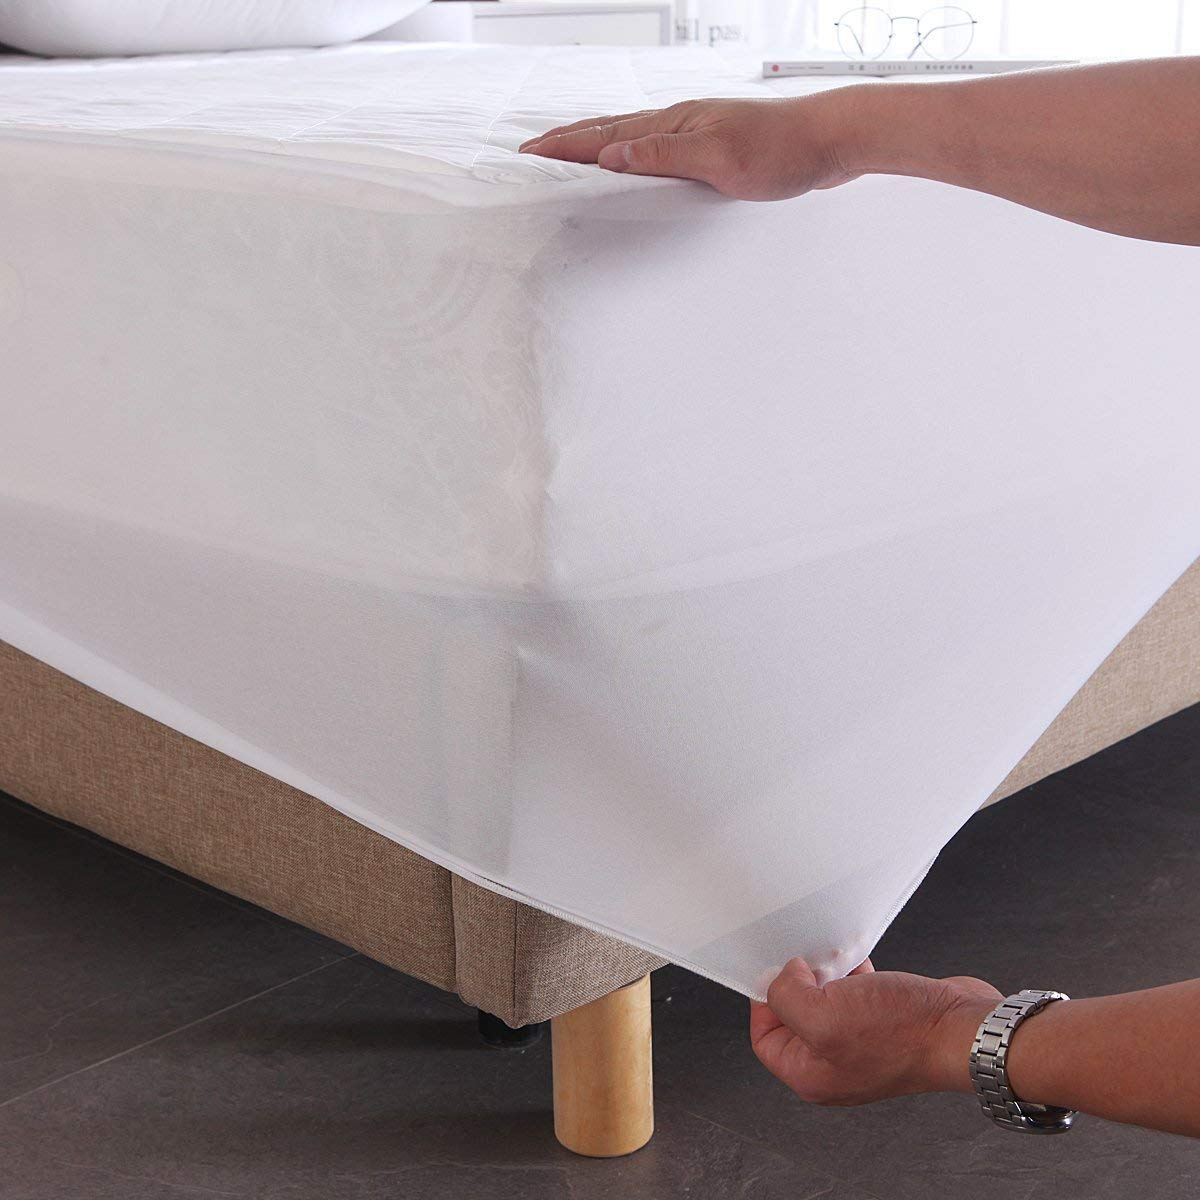 Exclusivo Mezcla 100% Cotton Quilted Bed Cover Fitted Twin Size Mattress Protector/Cover(39'' x 75'')- Waterproof, Noiseless& Hypoallergenic by Exclusivo Mezcla (Image #4)